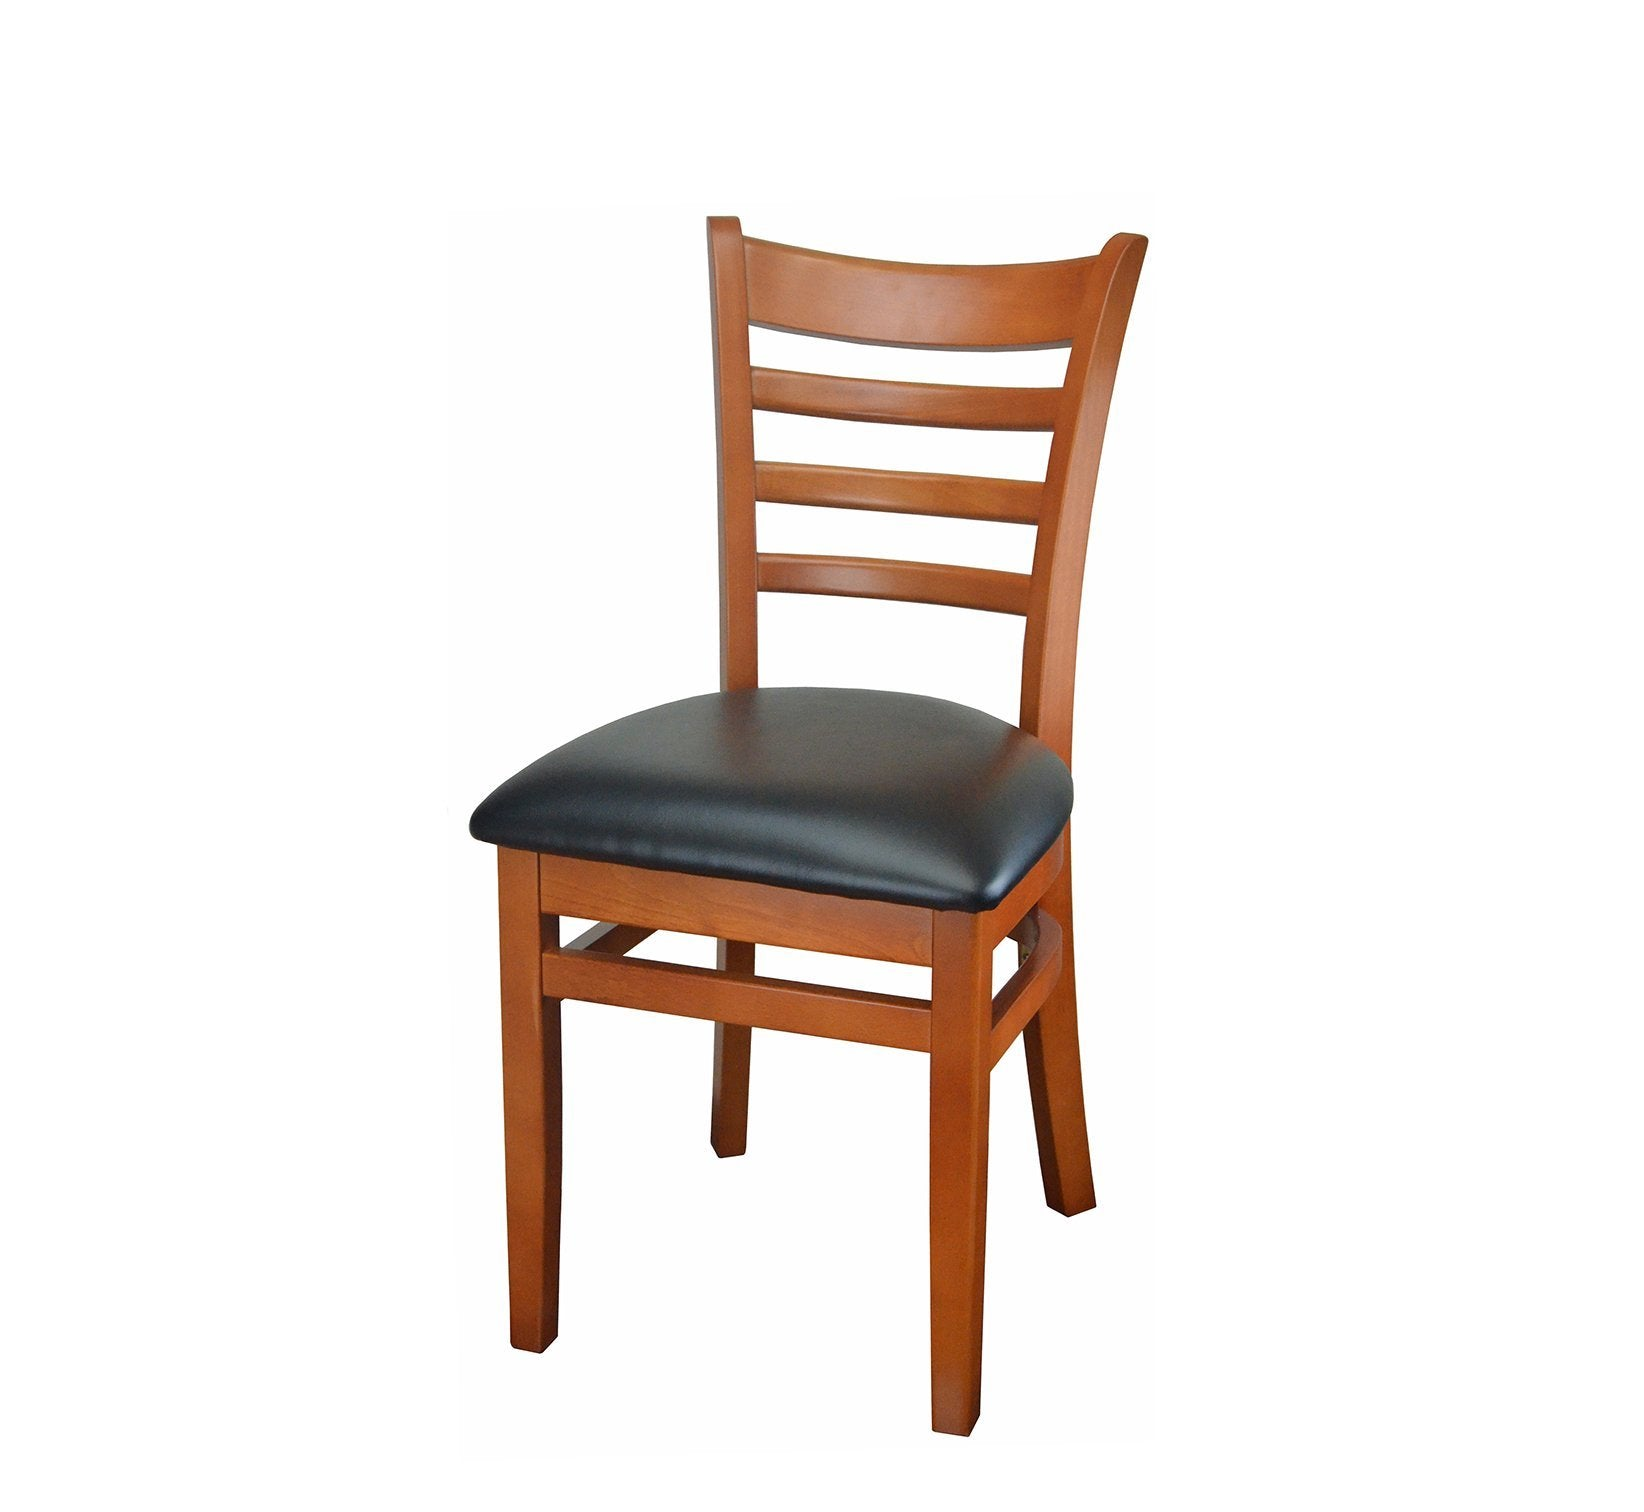 DHC 245-CHE Cherry Finish, Ladder Back Wood Dining Chair